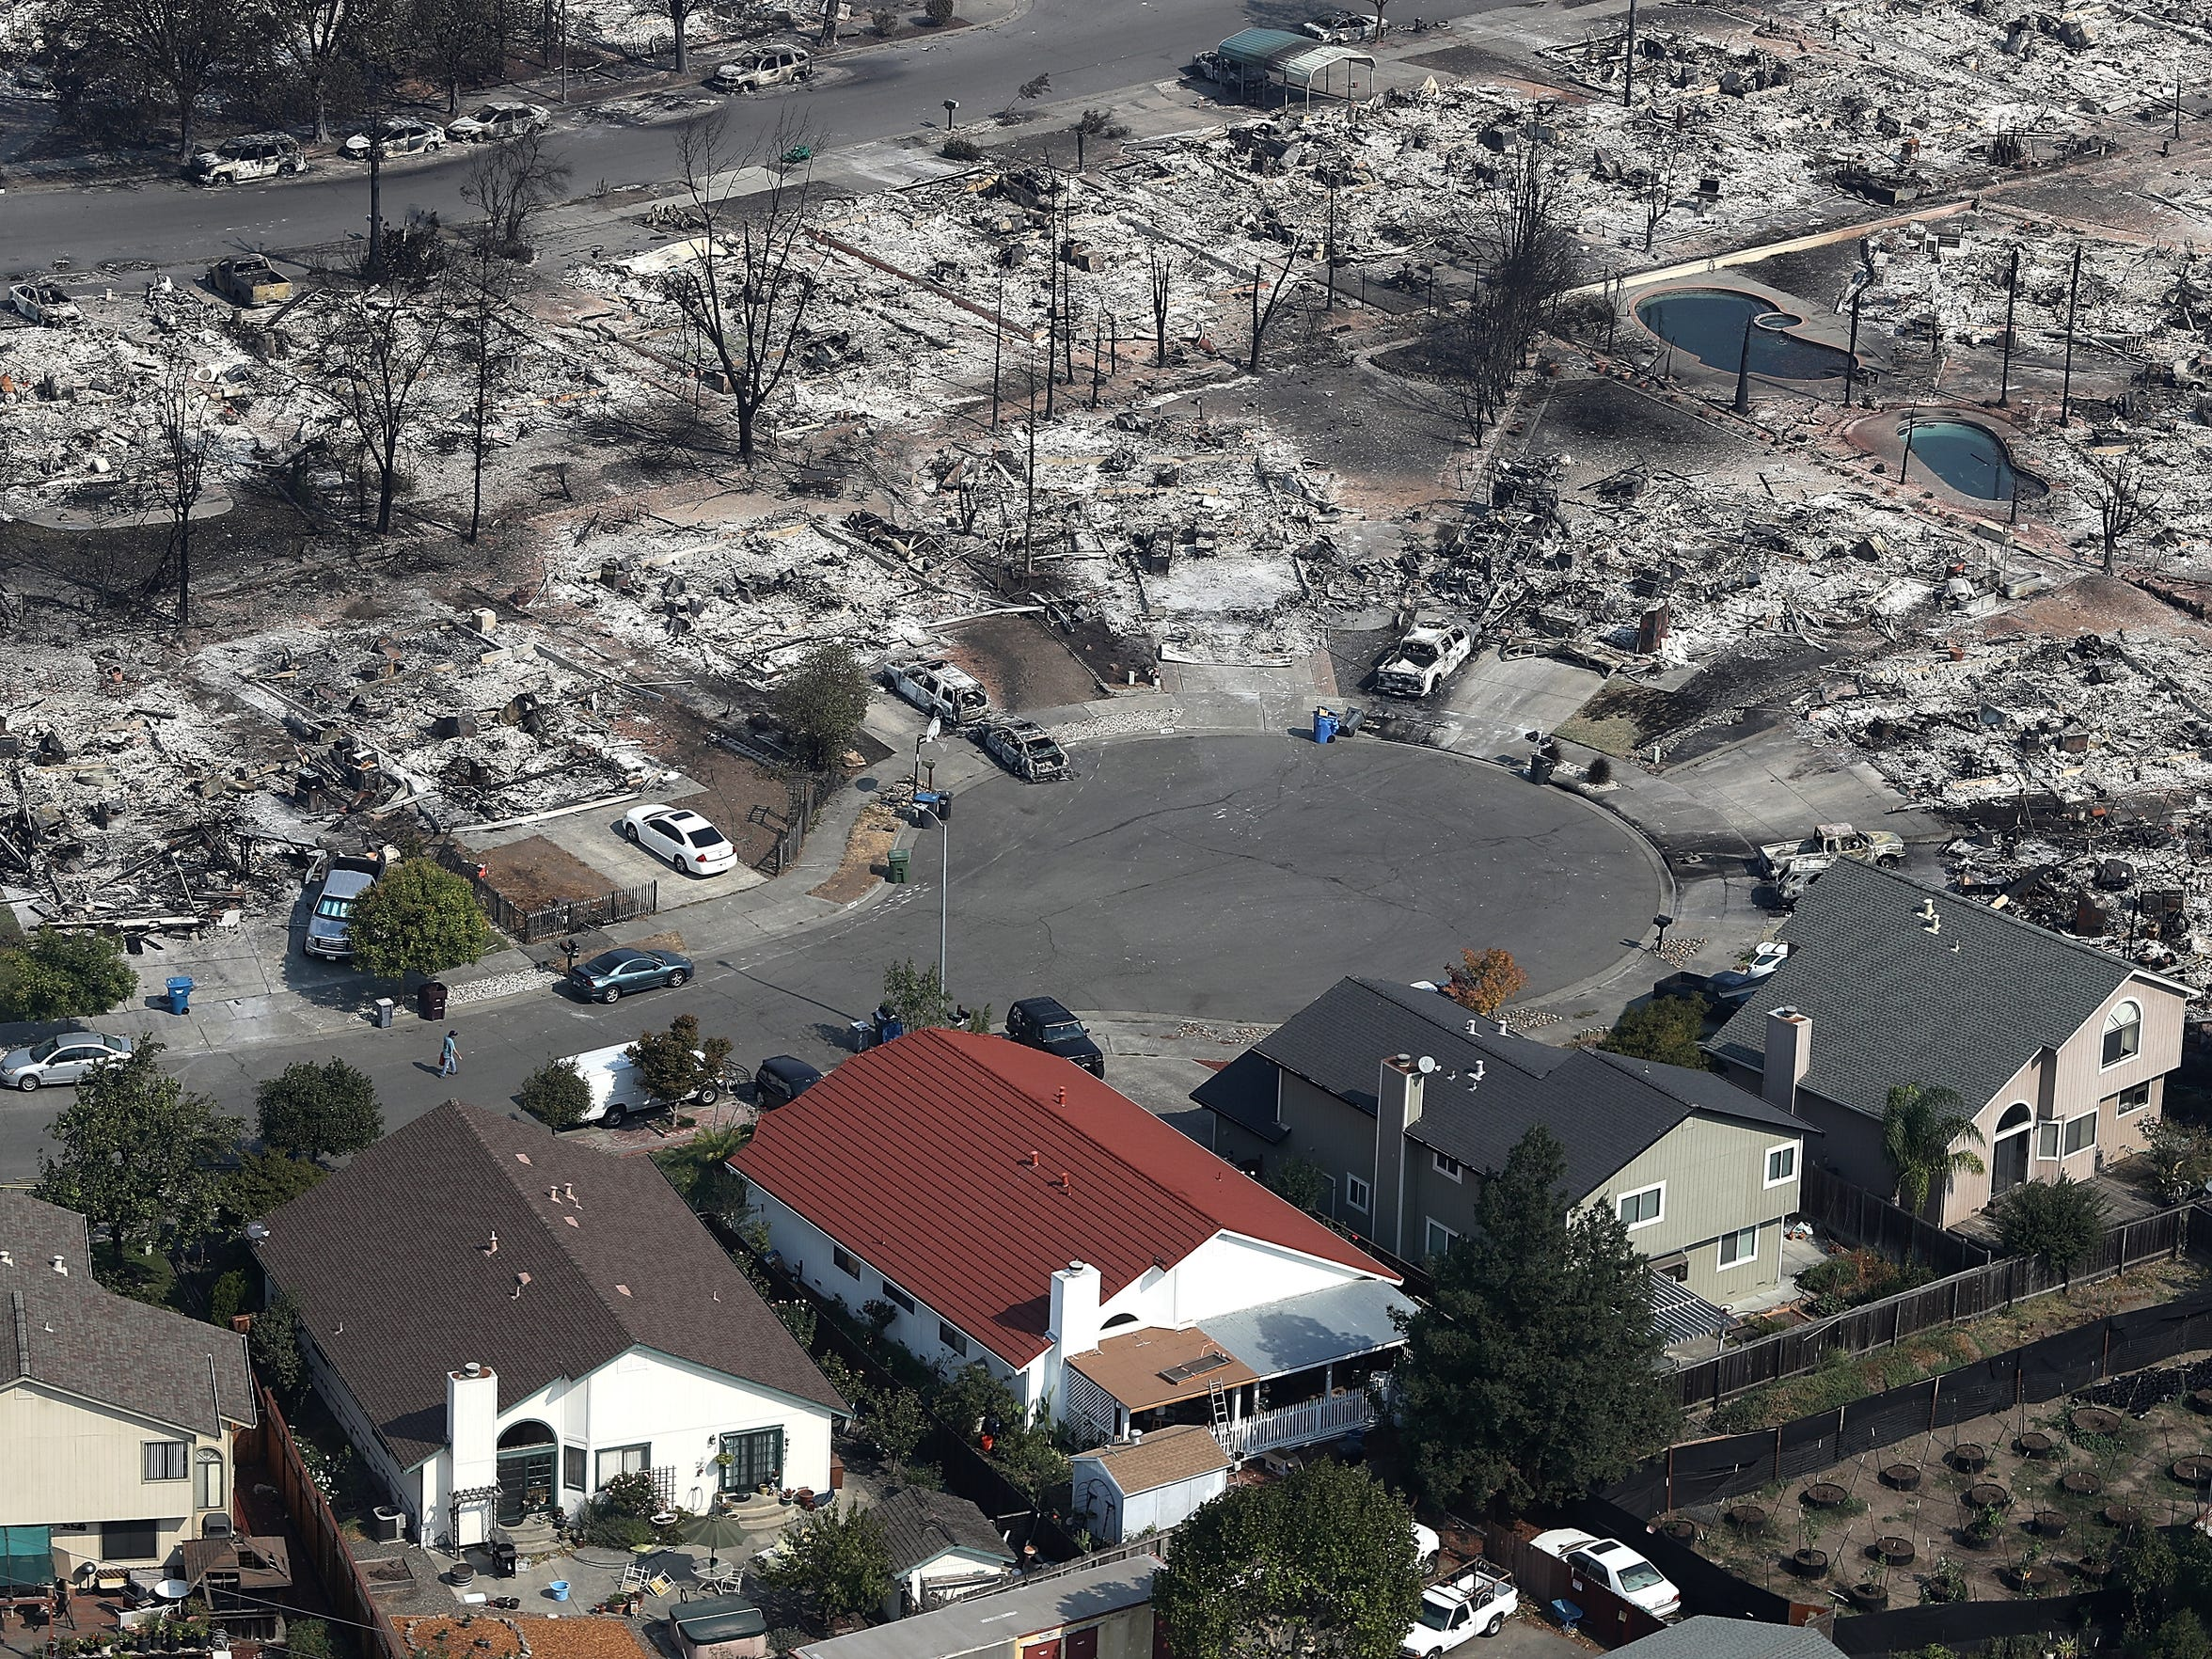 Oct. 11, 2017: An aerial view of homes that were destroyed by the Tubbs Fire in Santa Rosa, California.